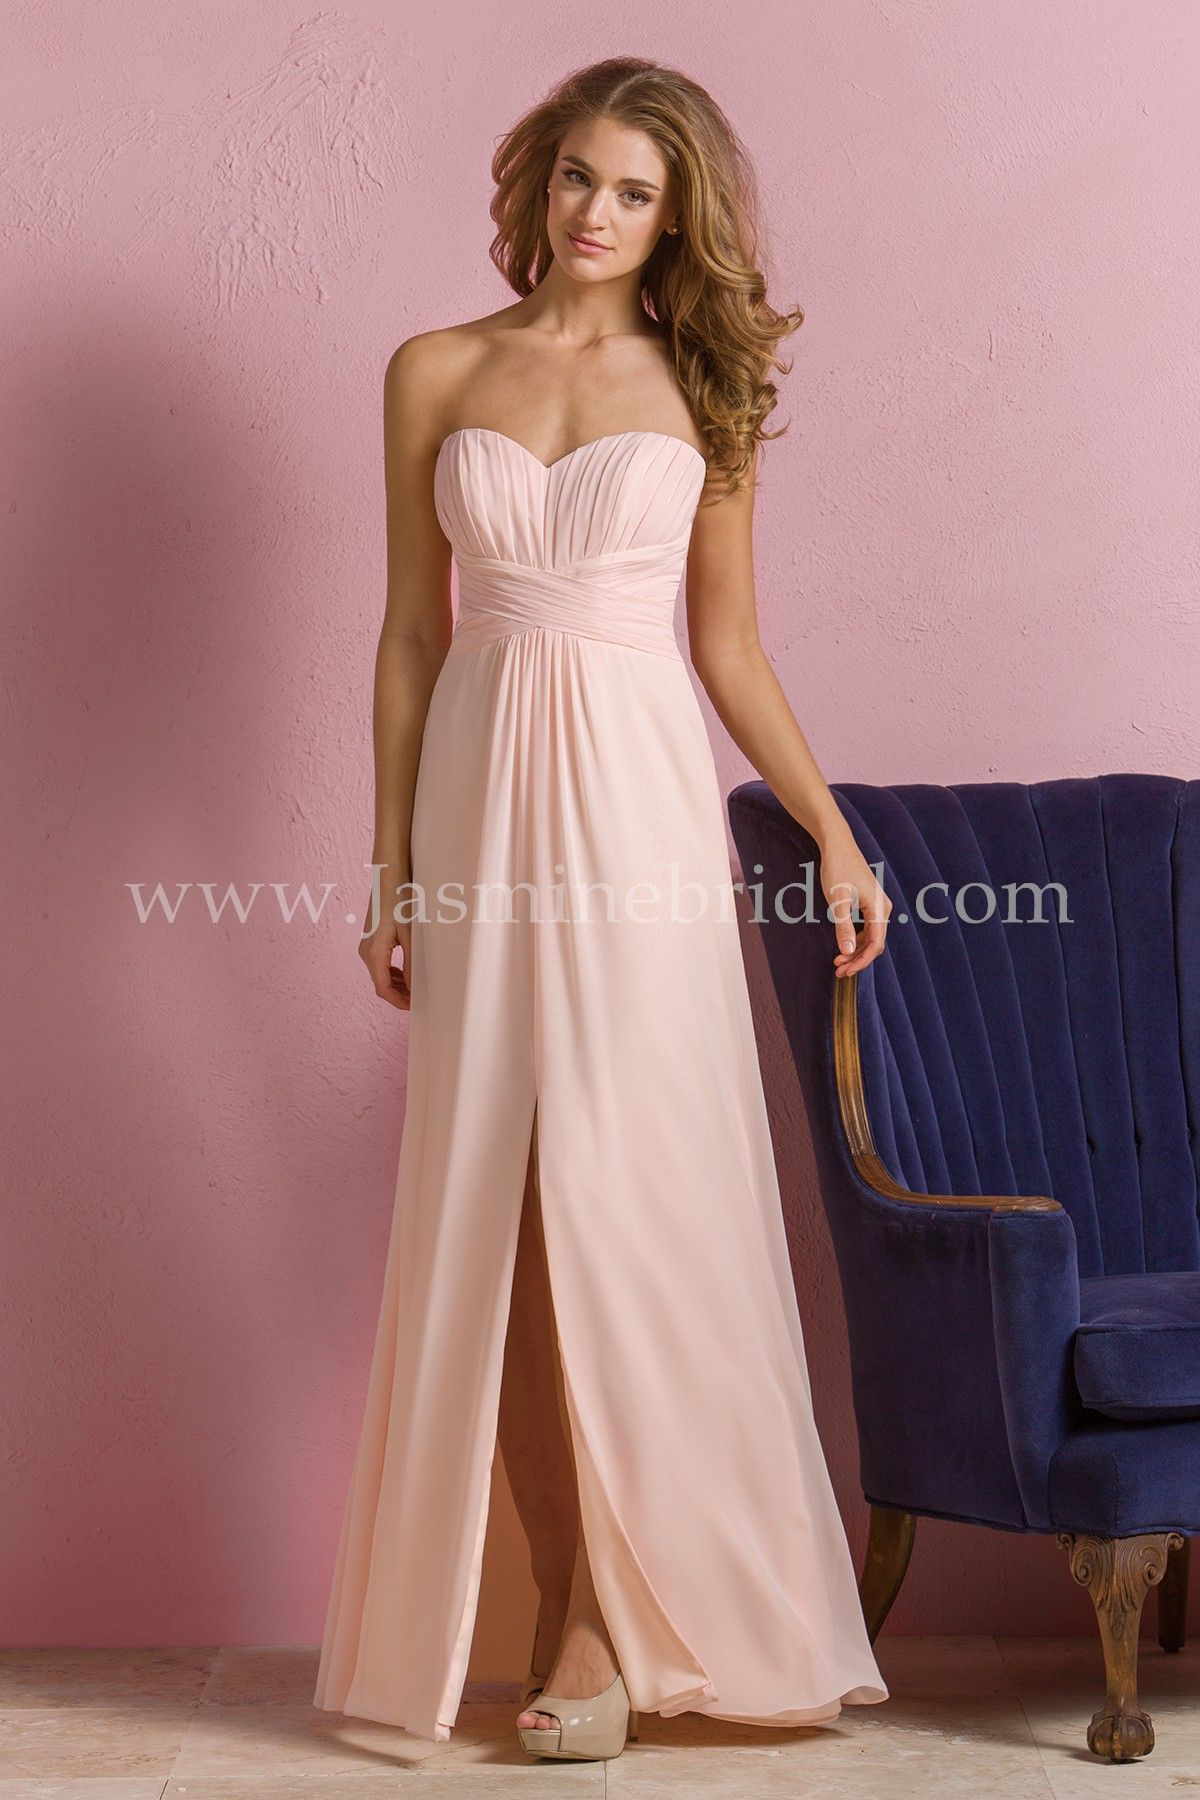 Jasmine Bridal Bridesmaid Dress B2 Style B173056 In Dreamsicle Fun And Flirty This